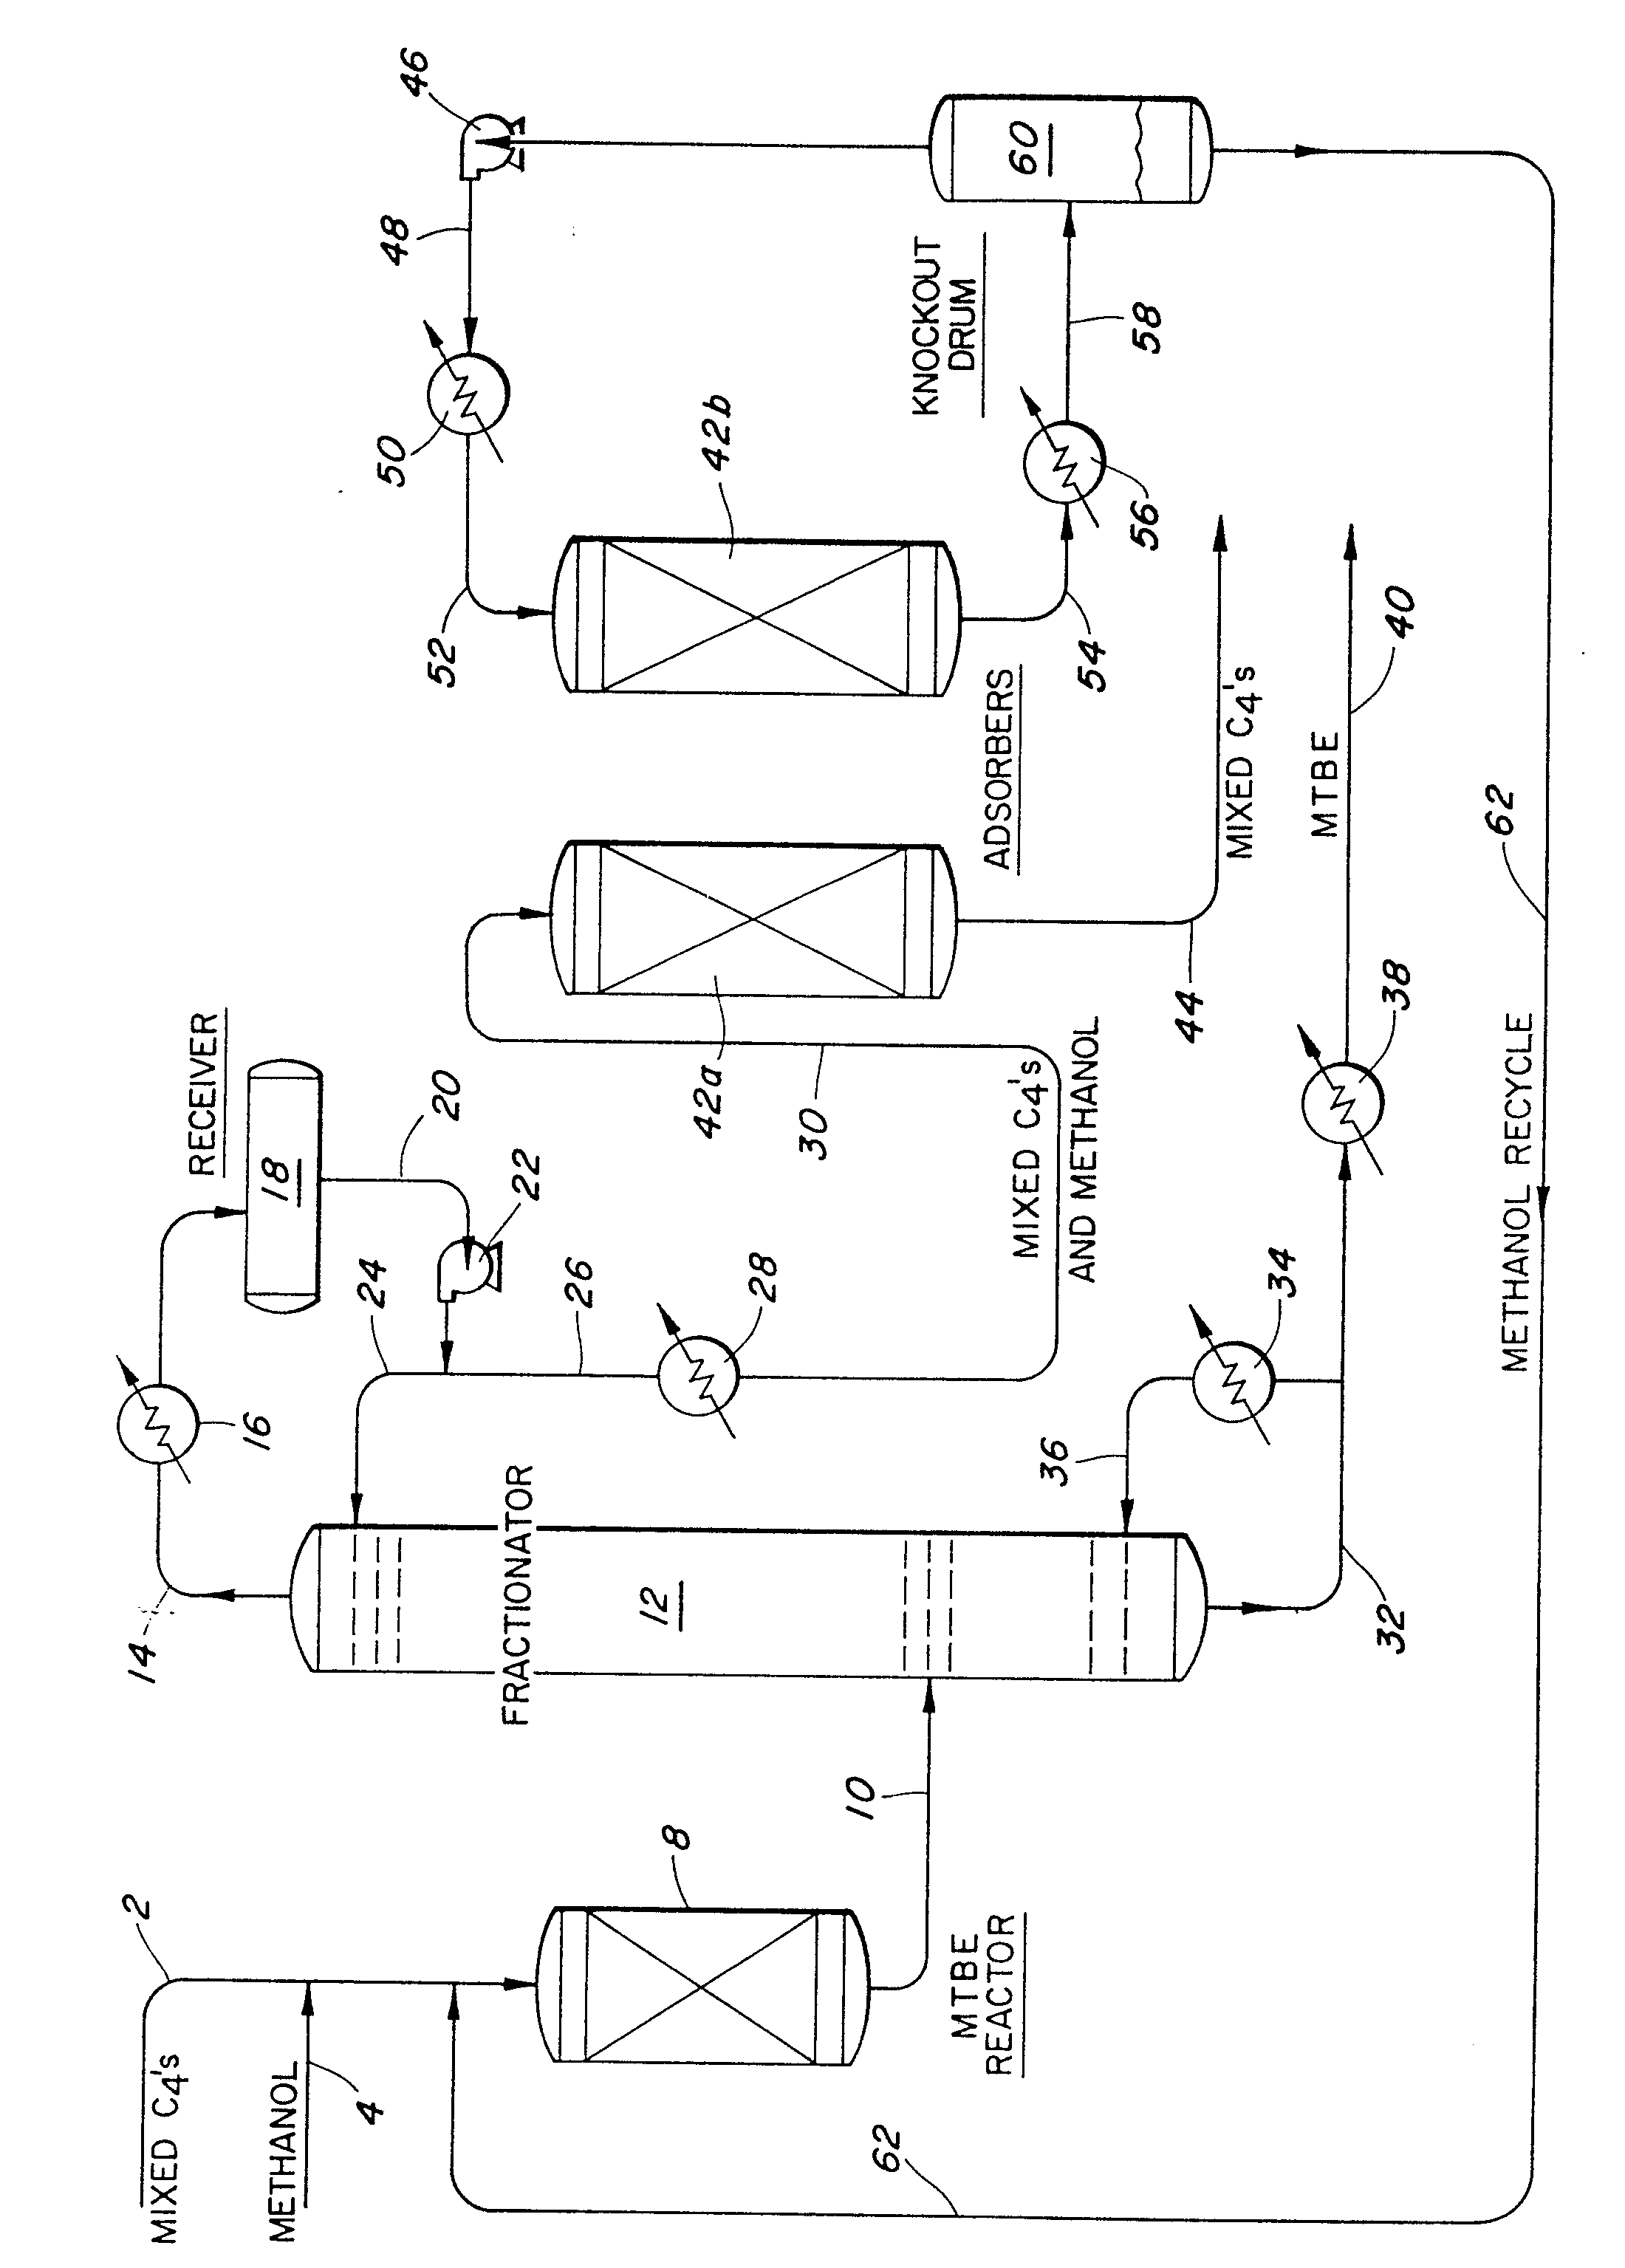 patent ep0264282a1 - recovery of methanol in an mtbe process